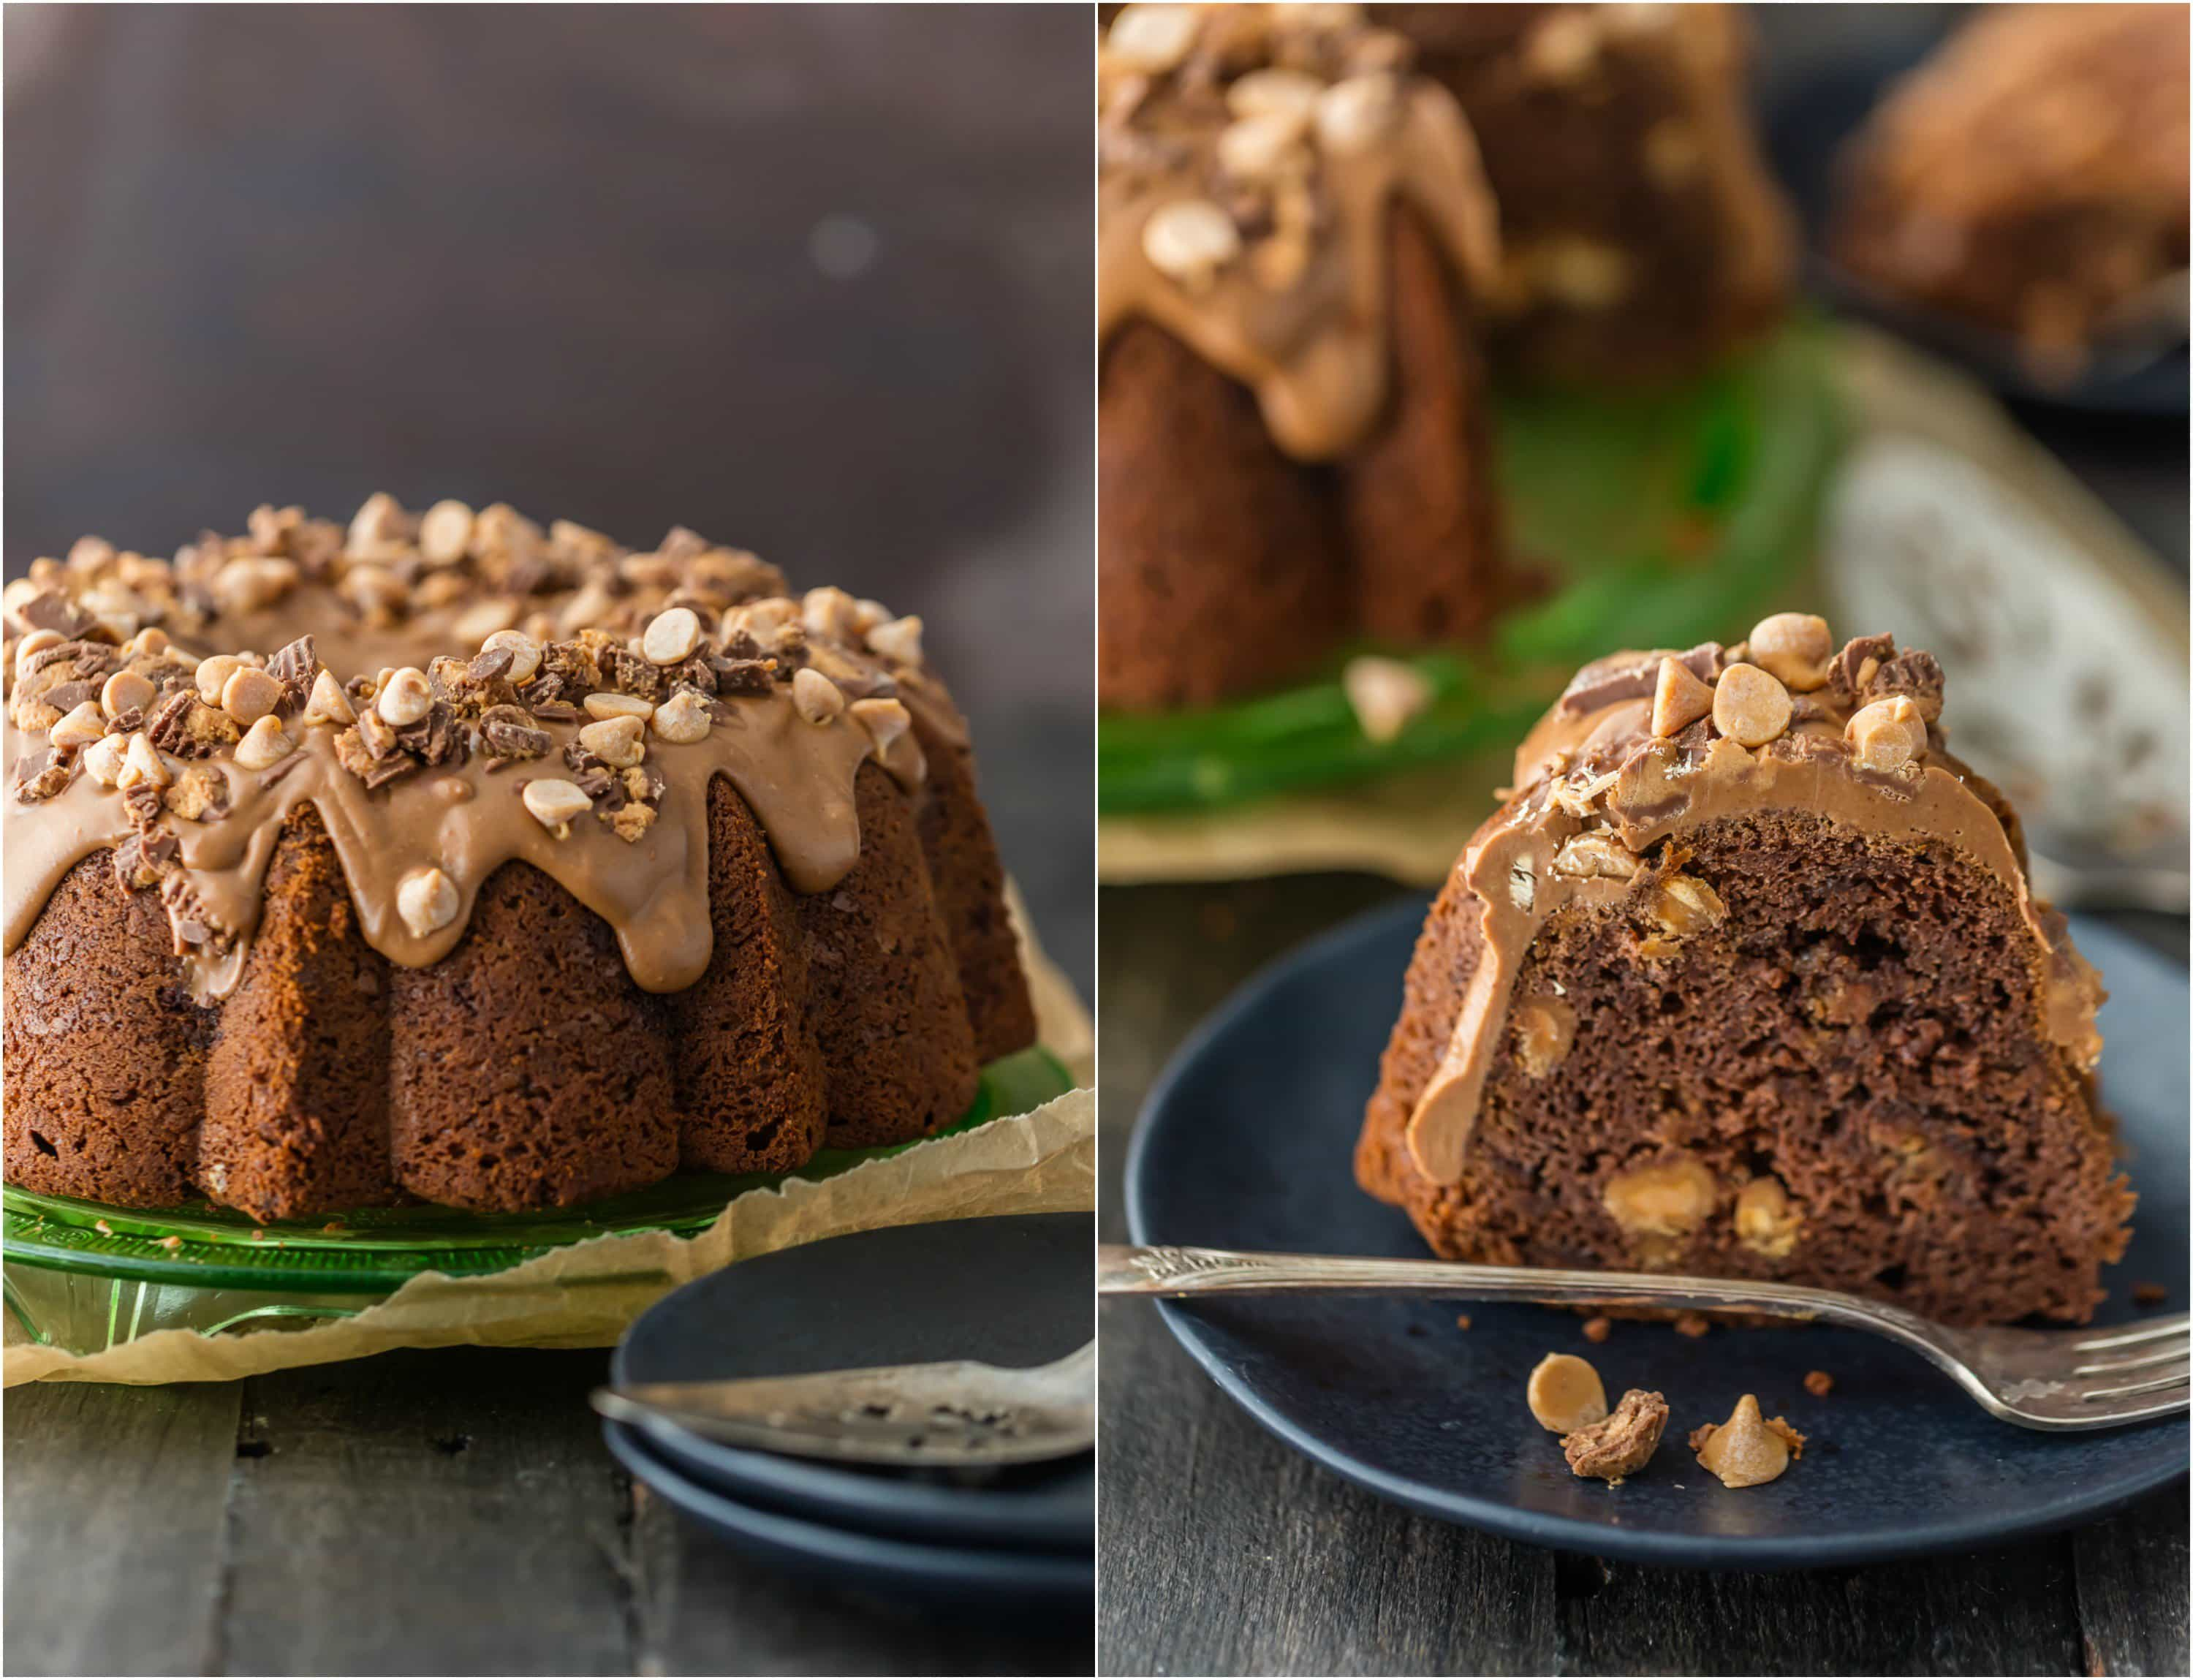 CHOCOLATE PEANUT BUTTER POUND CAKE is the ultimate bundt cake recipe! Topped with a decadent peanut butter icing, this indulgent cake is perfect for the holidays!